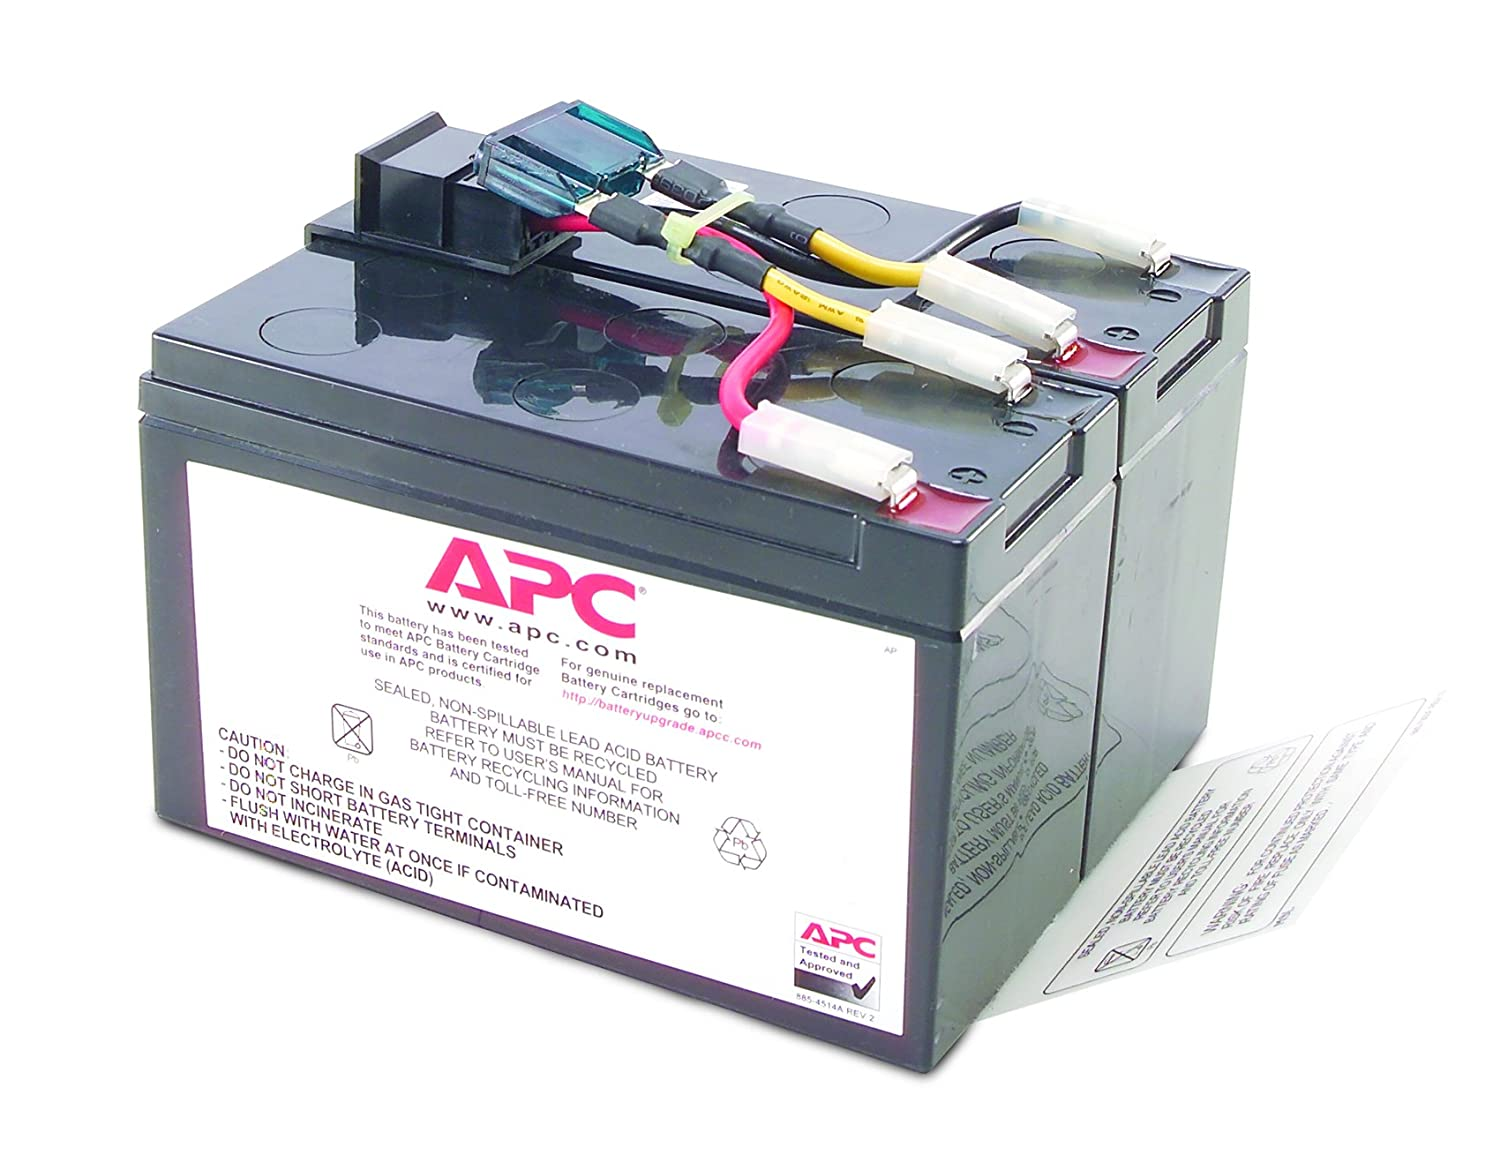 apc rbc7 replacement battery cartridge no 7 amazon ca electronics Back of a Apc 1500 Battery  Kinetik Battery Wiring Diagram CyberPower 1500 AVR Battery Replacement Apc 1500 Battery Replacement